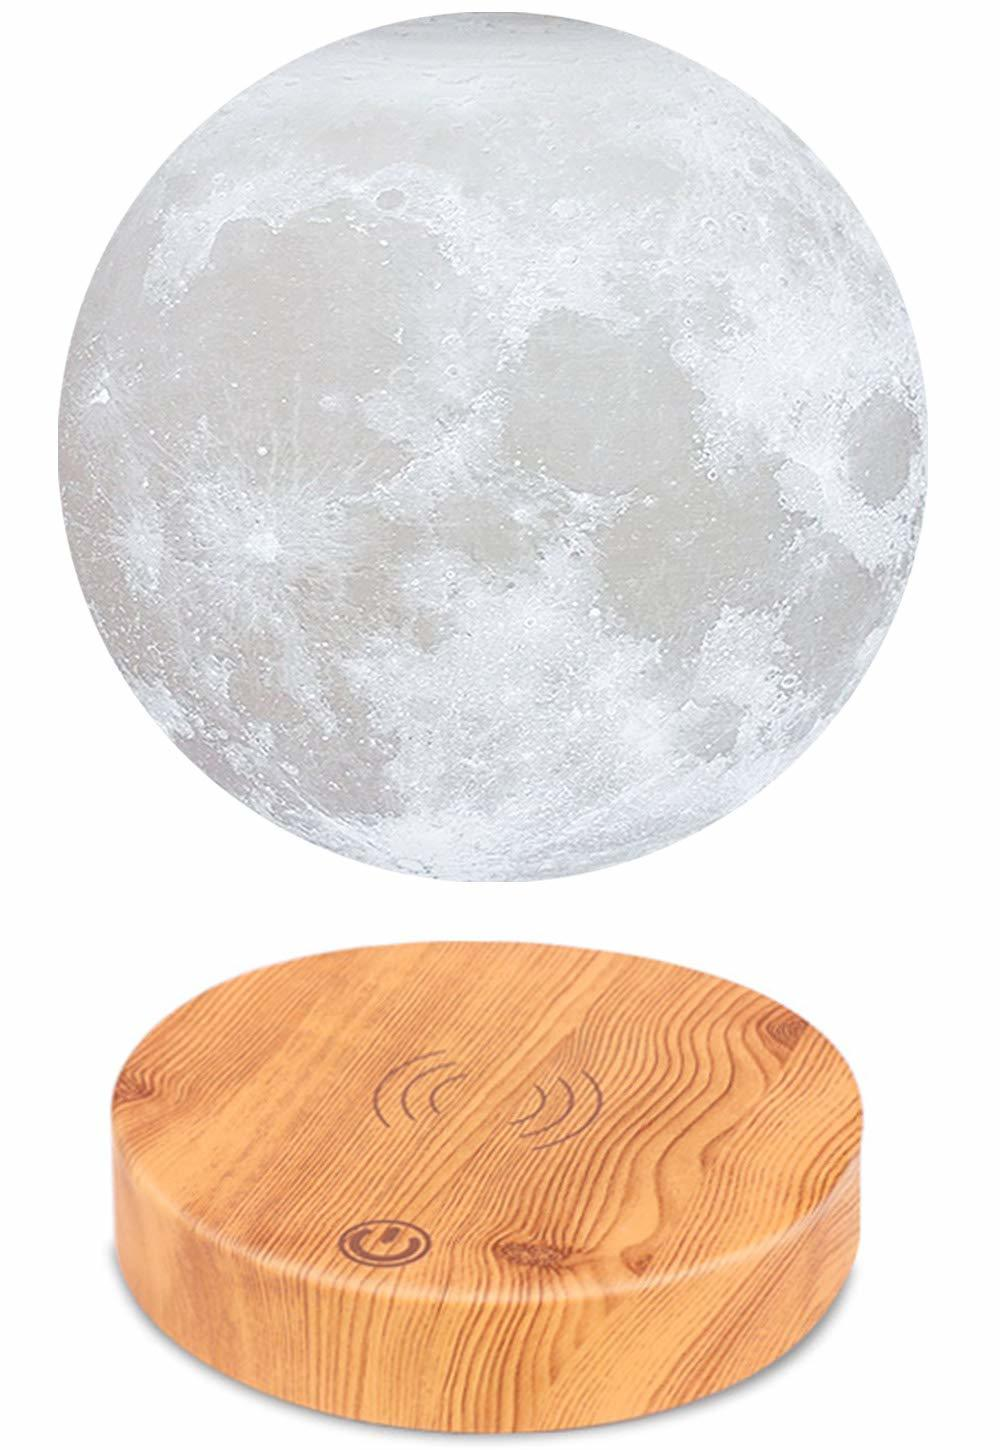 Instagram tools - floating moon lamp